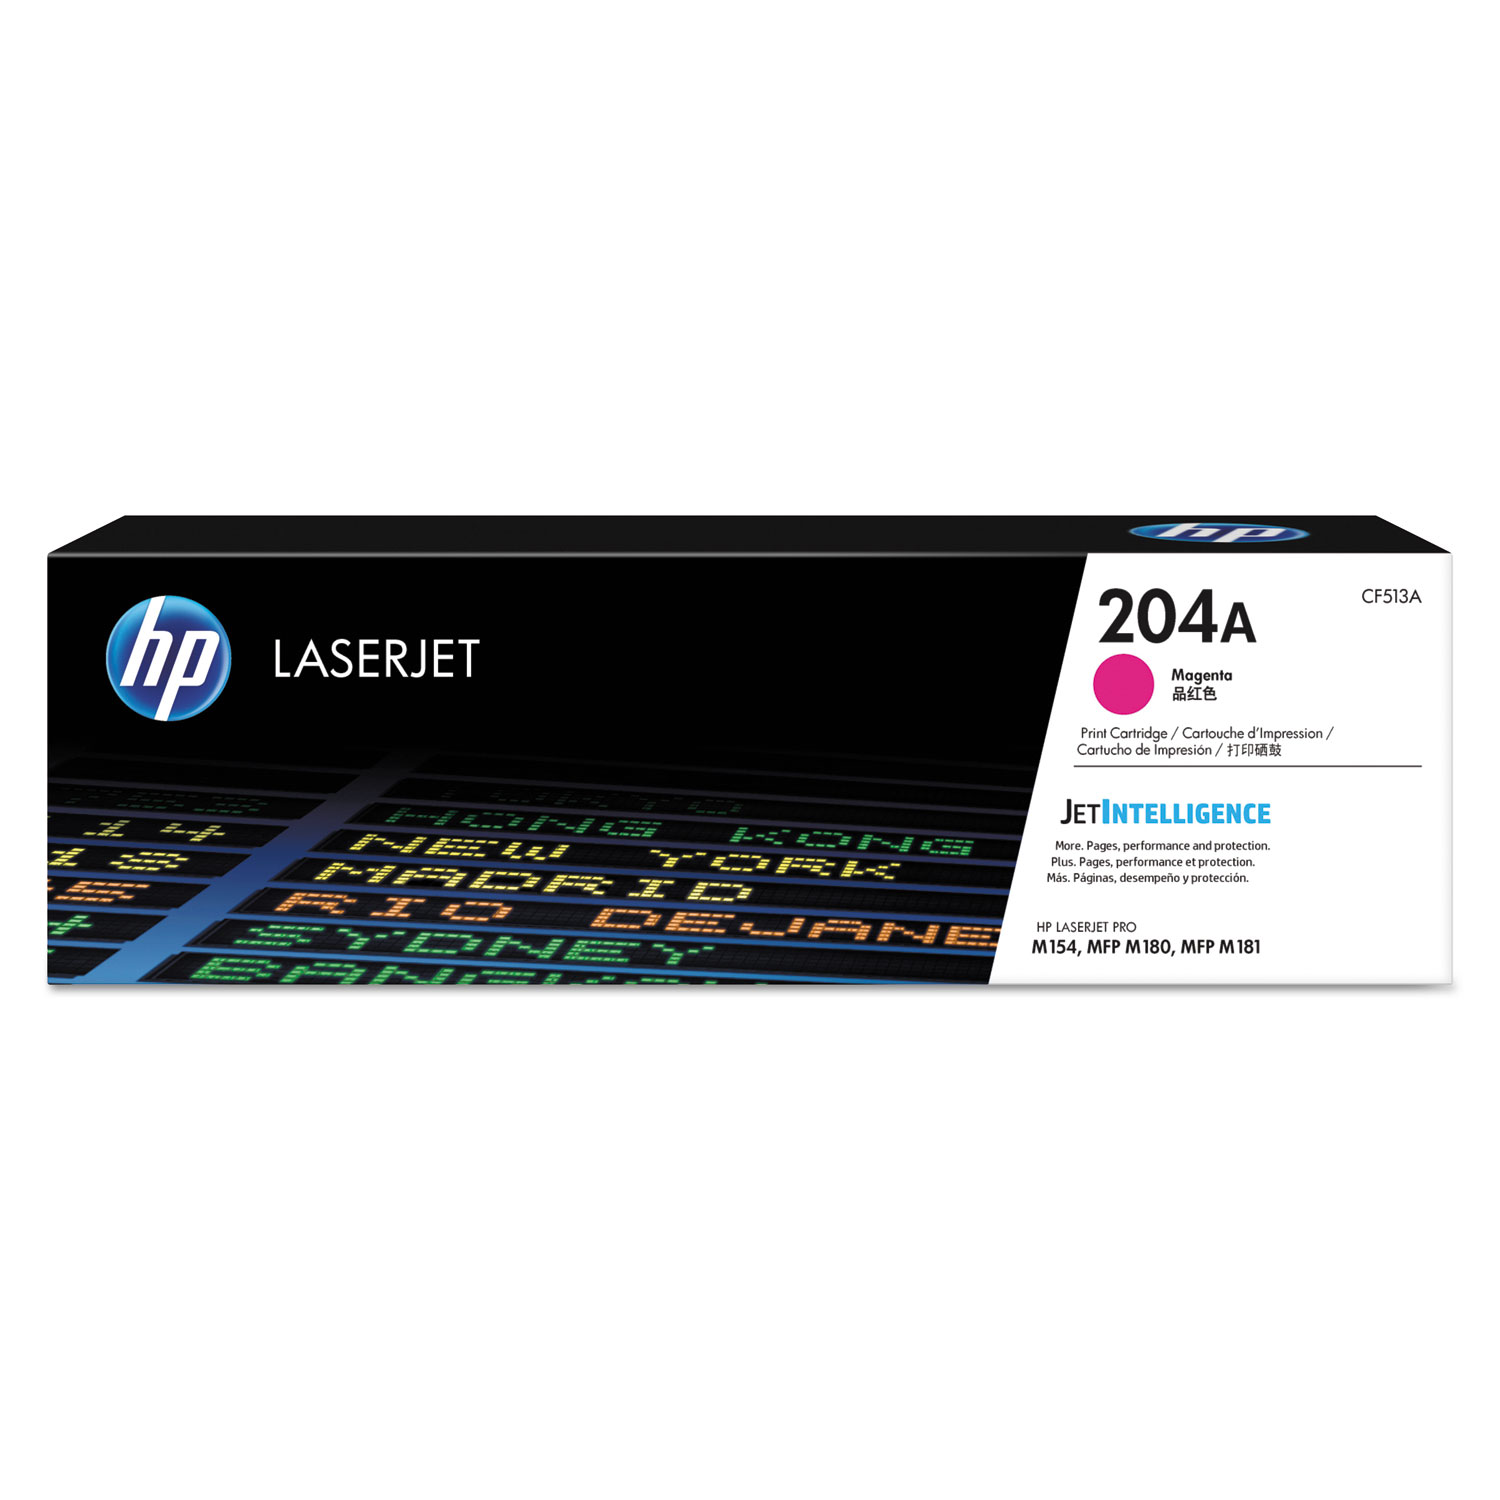 HP 204A, CF513A Magenta Original LaserJet Toner Cartridge